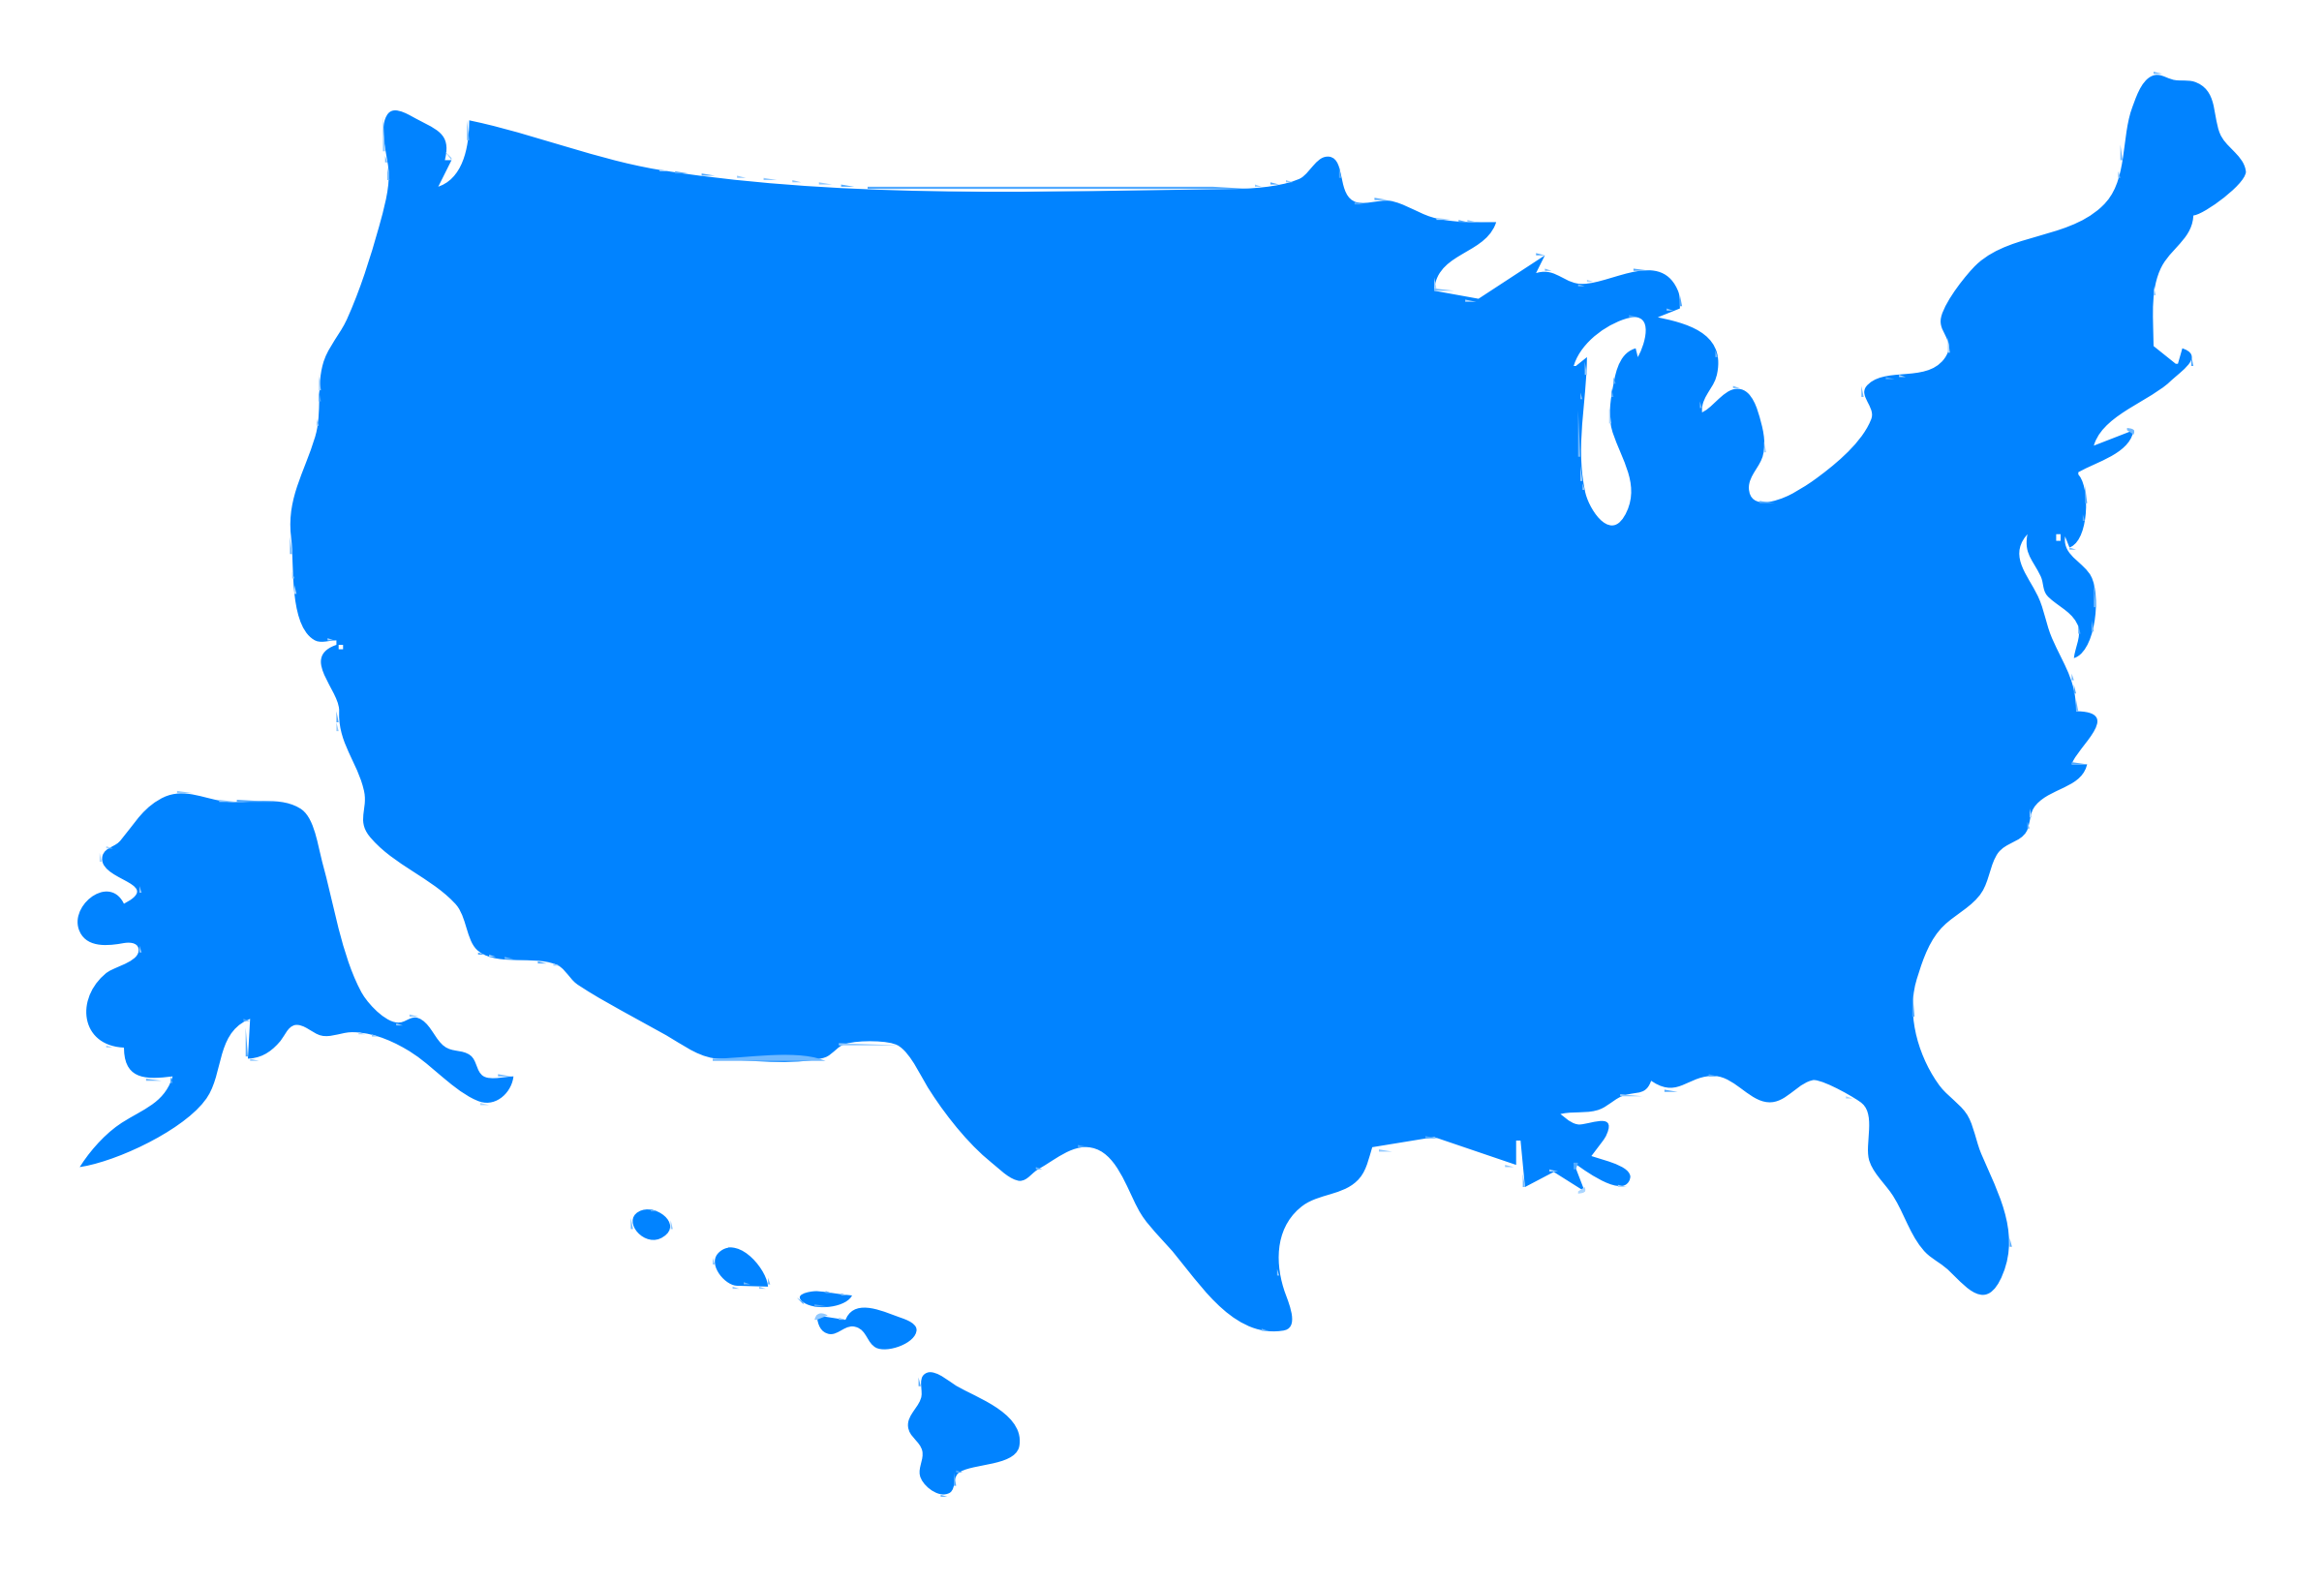 USA Map Silhouette By IslandVibz A Map Silhouette Of The USA - Us map including alaska and hawaii